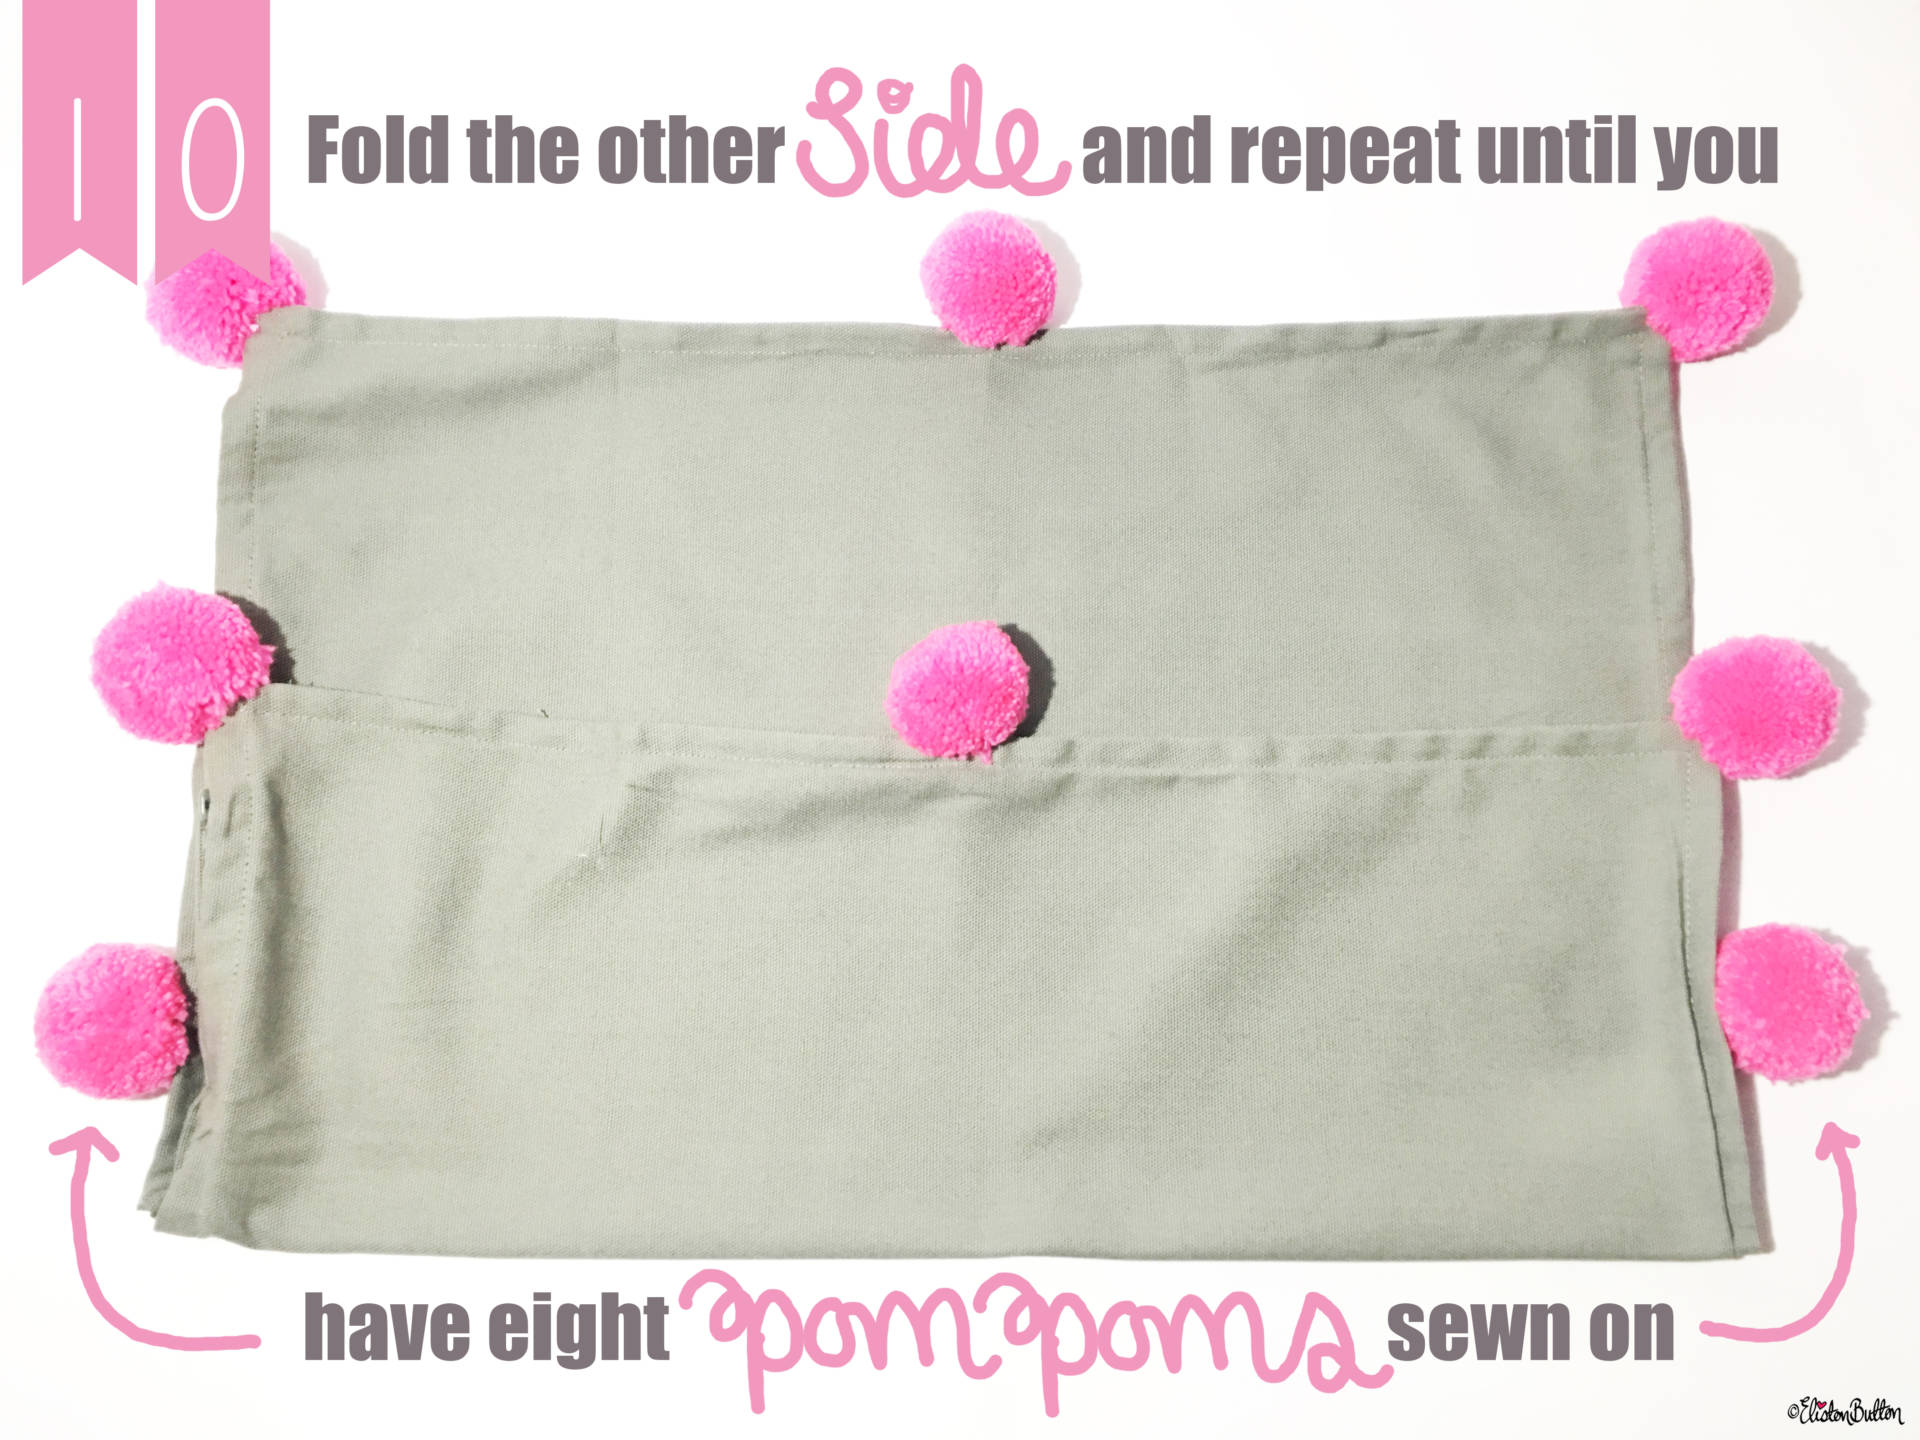 16. Fold the Other Way and Repeat Until you have Eight Pom Poms Around your Cushion Cover - Tutorial Tuesday – Pom Pom Cushion Cover at www.elistonbutton.com - Eliston Button - That Crafty Kid – Art, Design, Craft & Adventure.